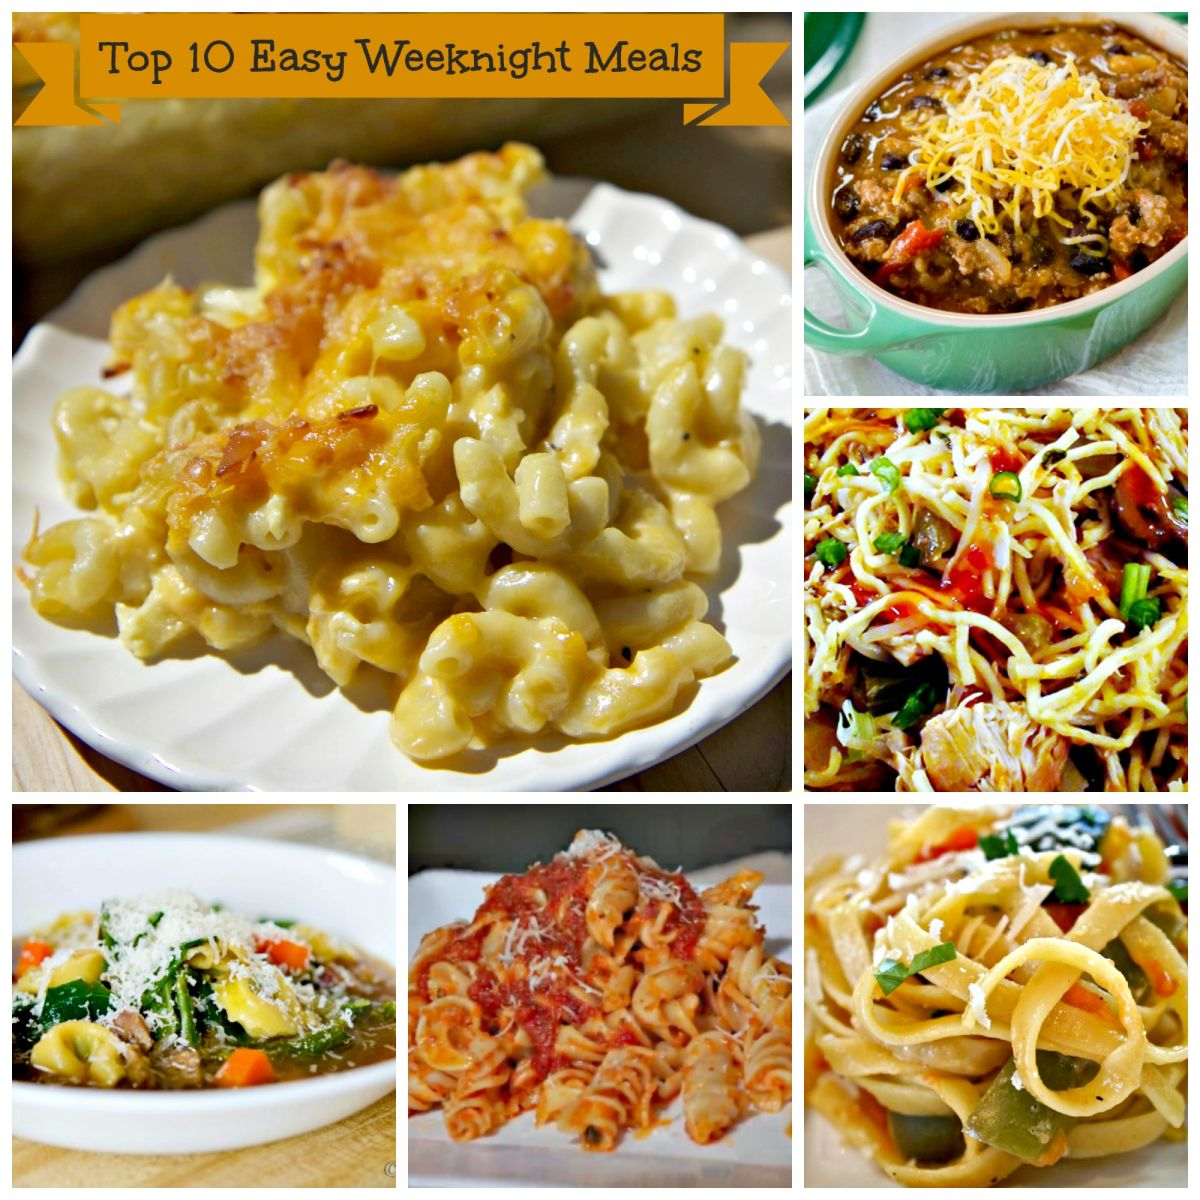 Top 10 Quick and Easy Weeknight Meals